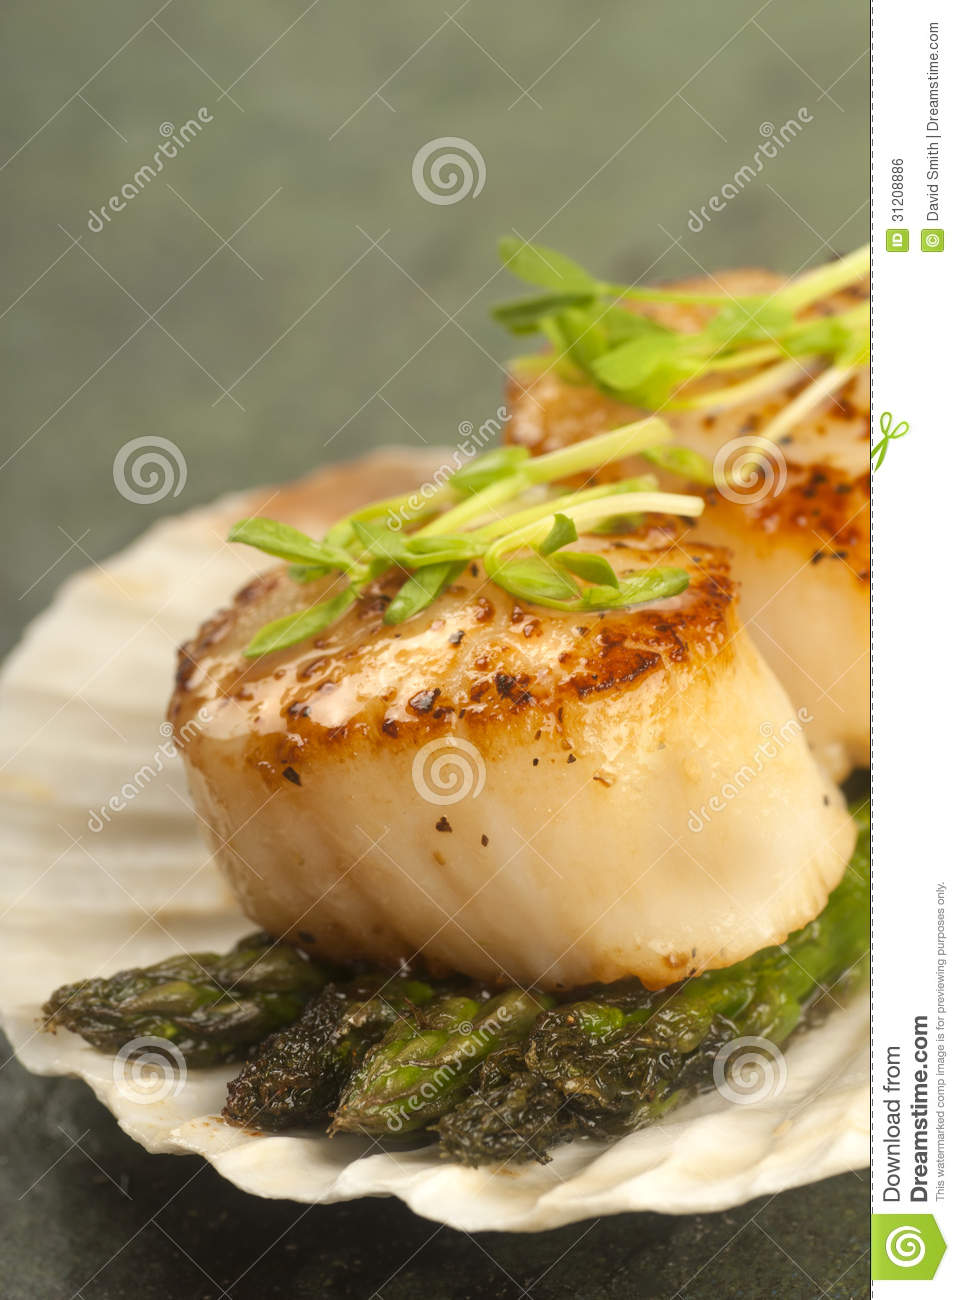 Sea Scallop With Asparagus In A Scallop Shell Royalty Free Stock Image ...